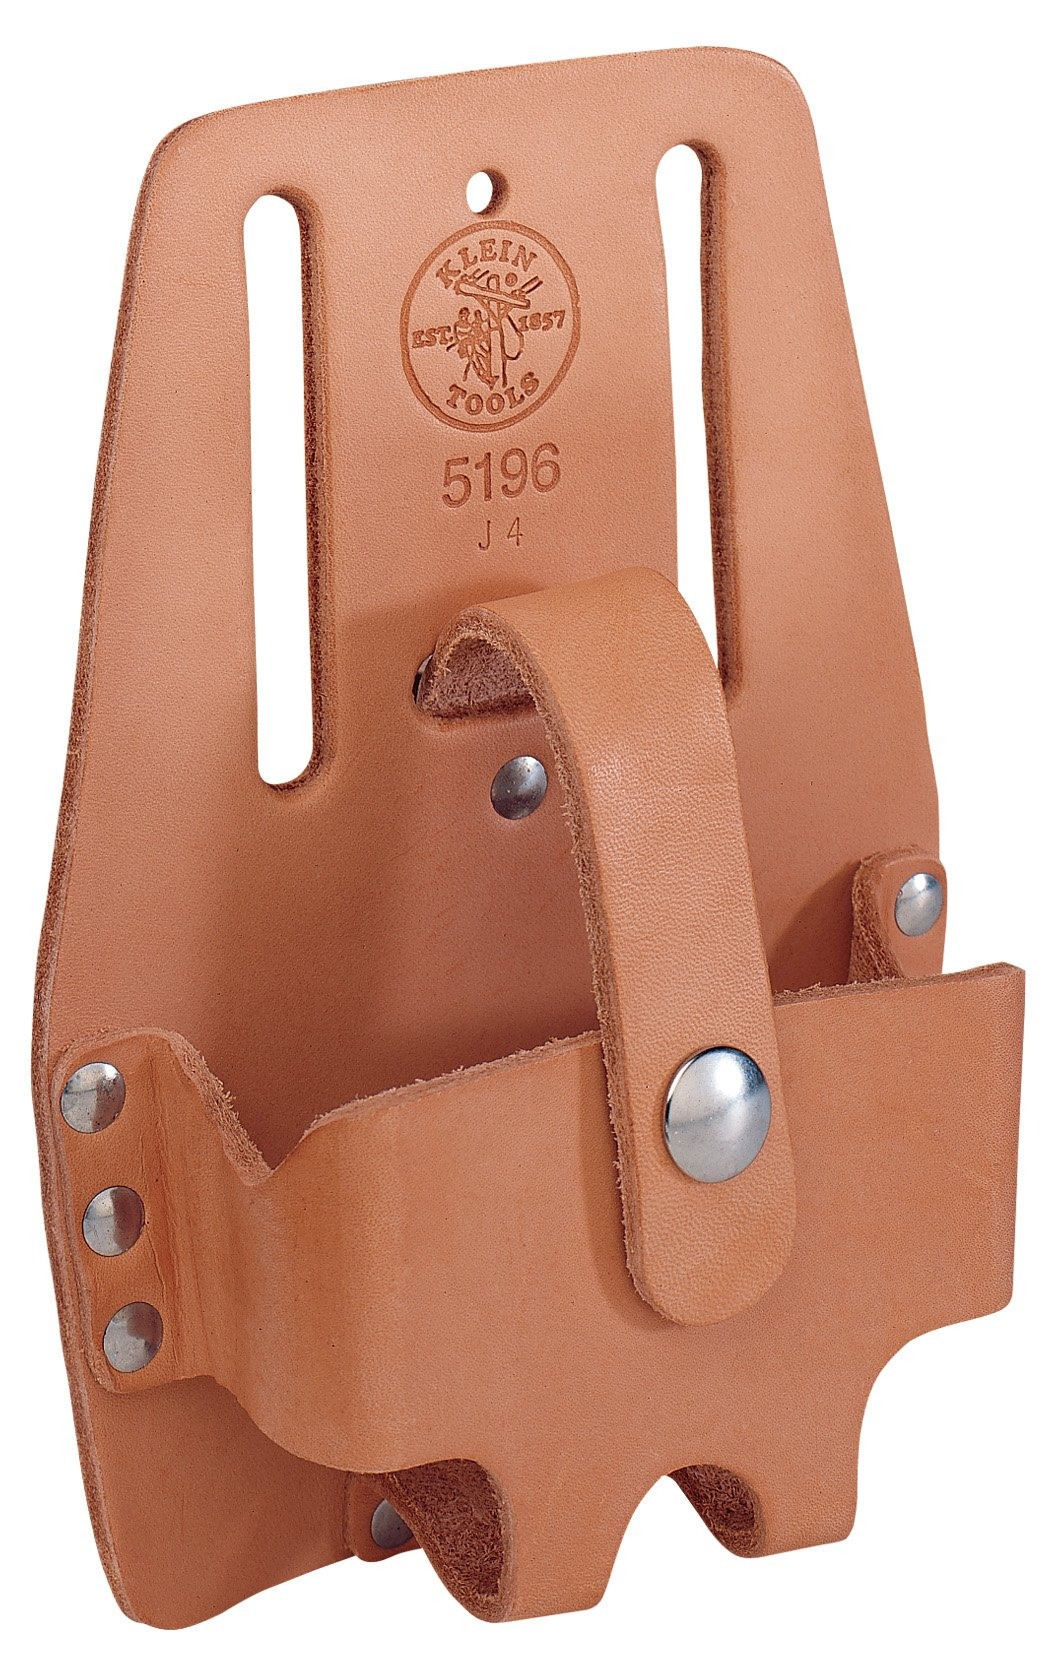 Klein Tools 5196 Leather Tape-Rule Holder, Large by Klein Tools (Image #1)